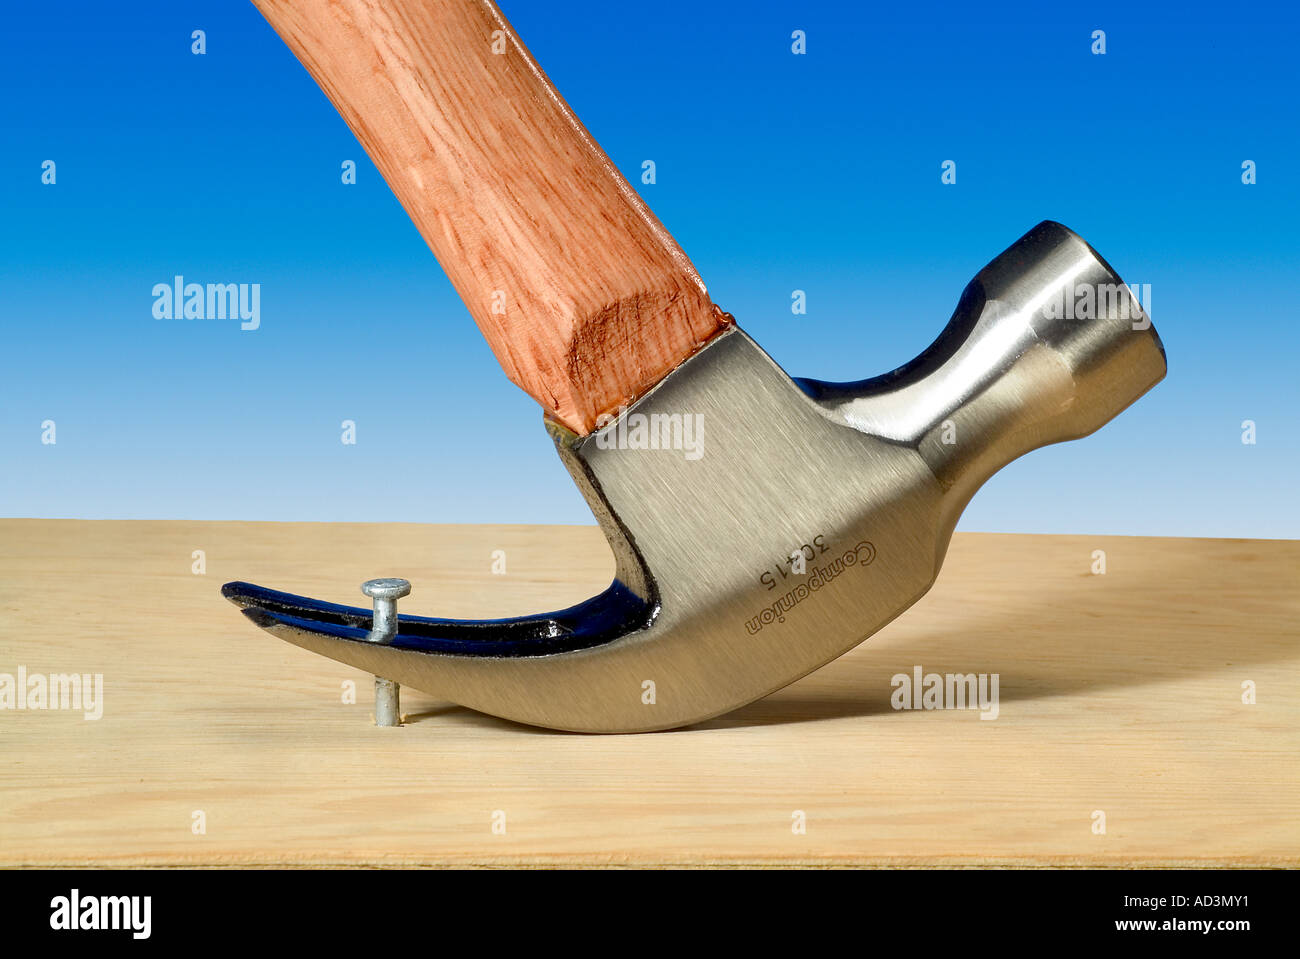 Claw Hammer Pulling Nail - Stock Image